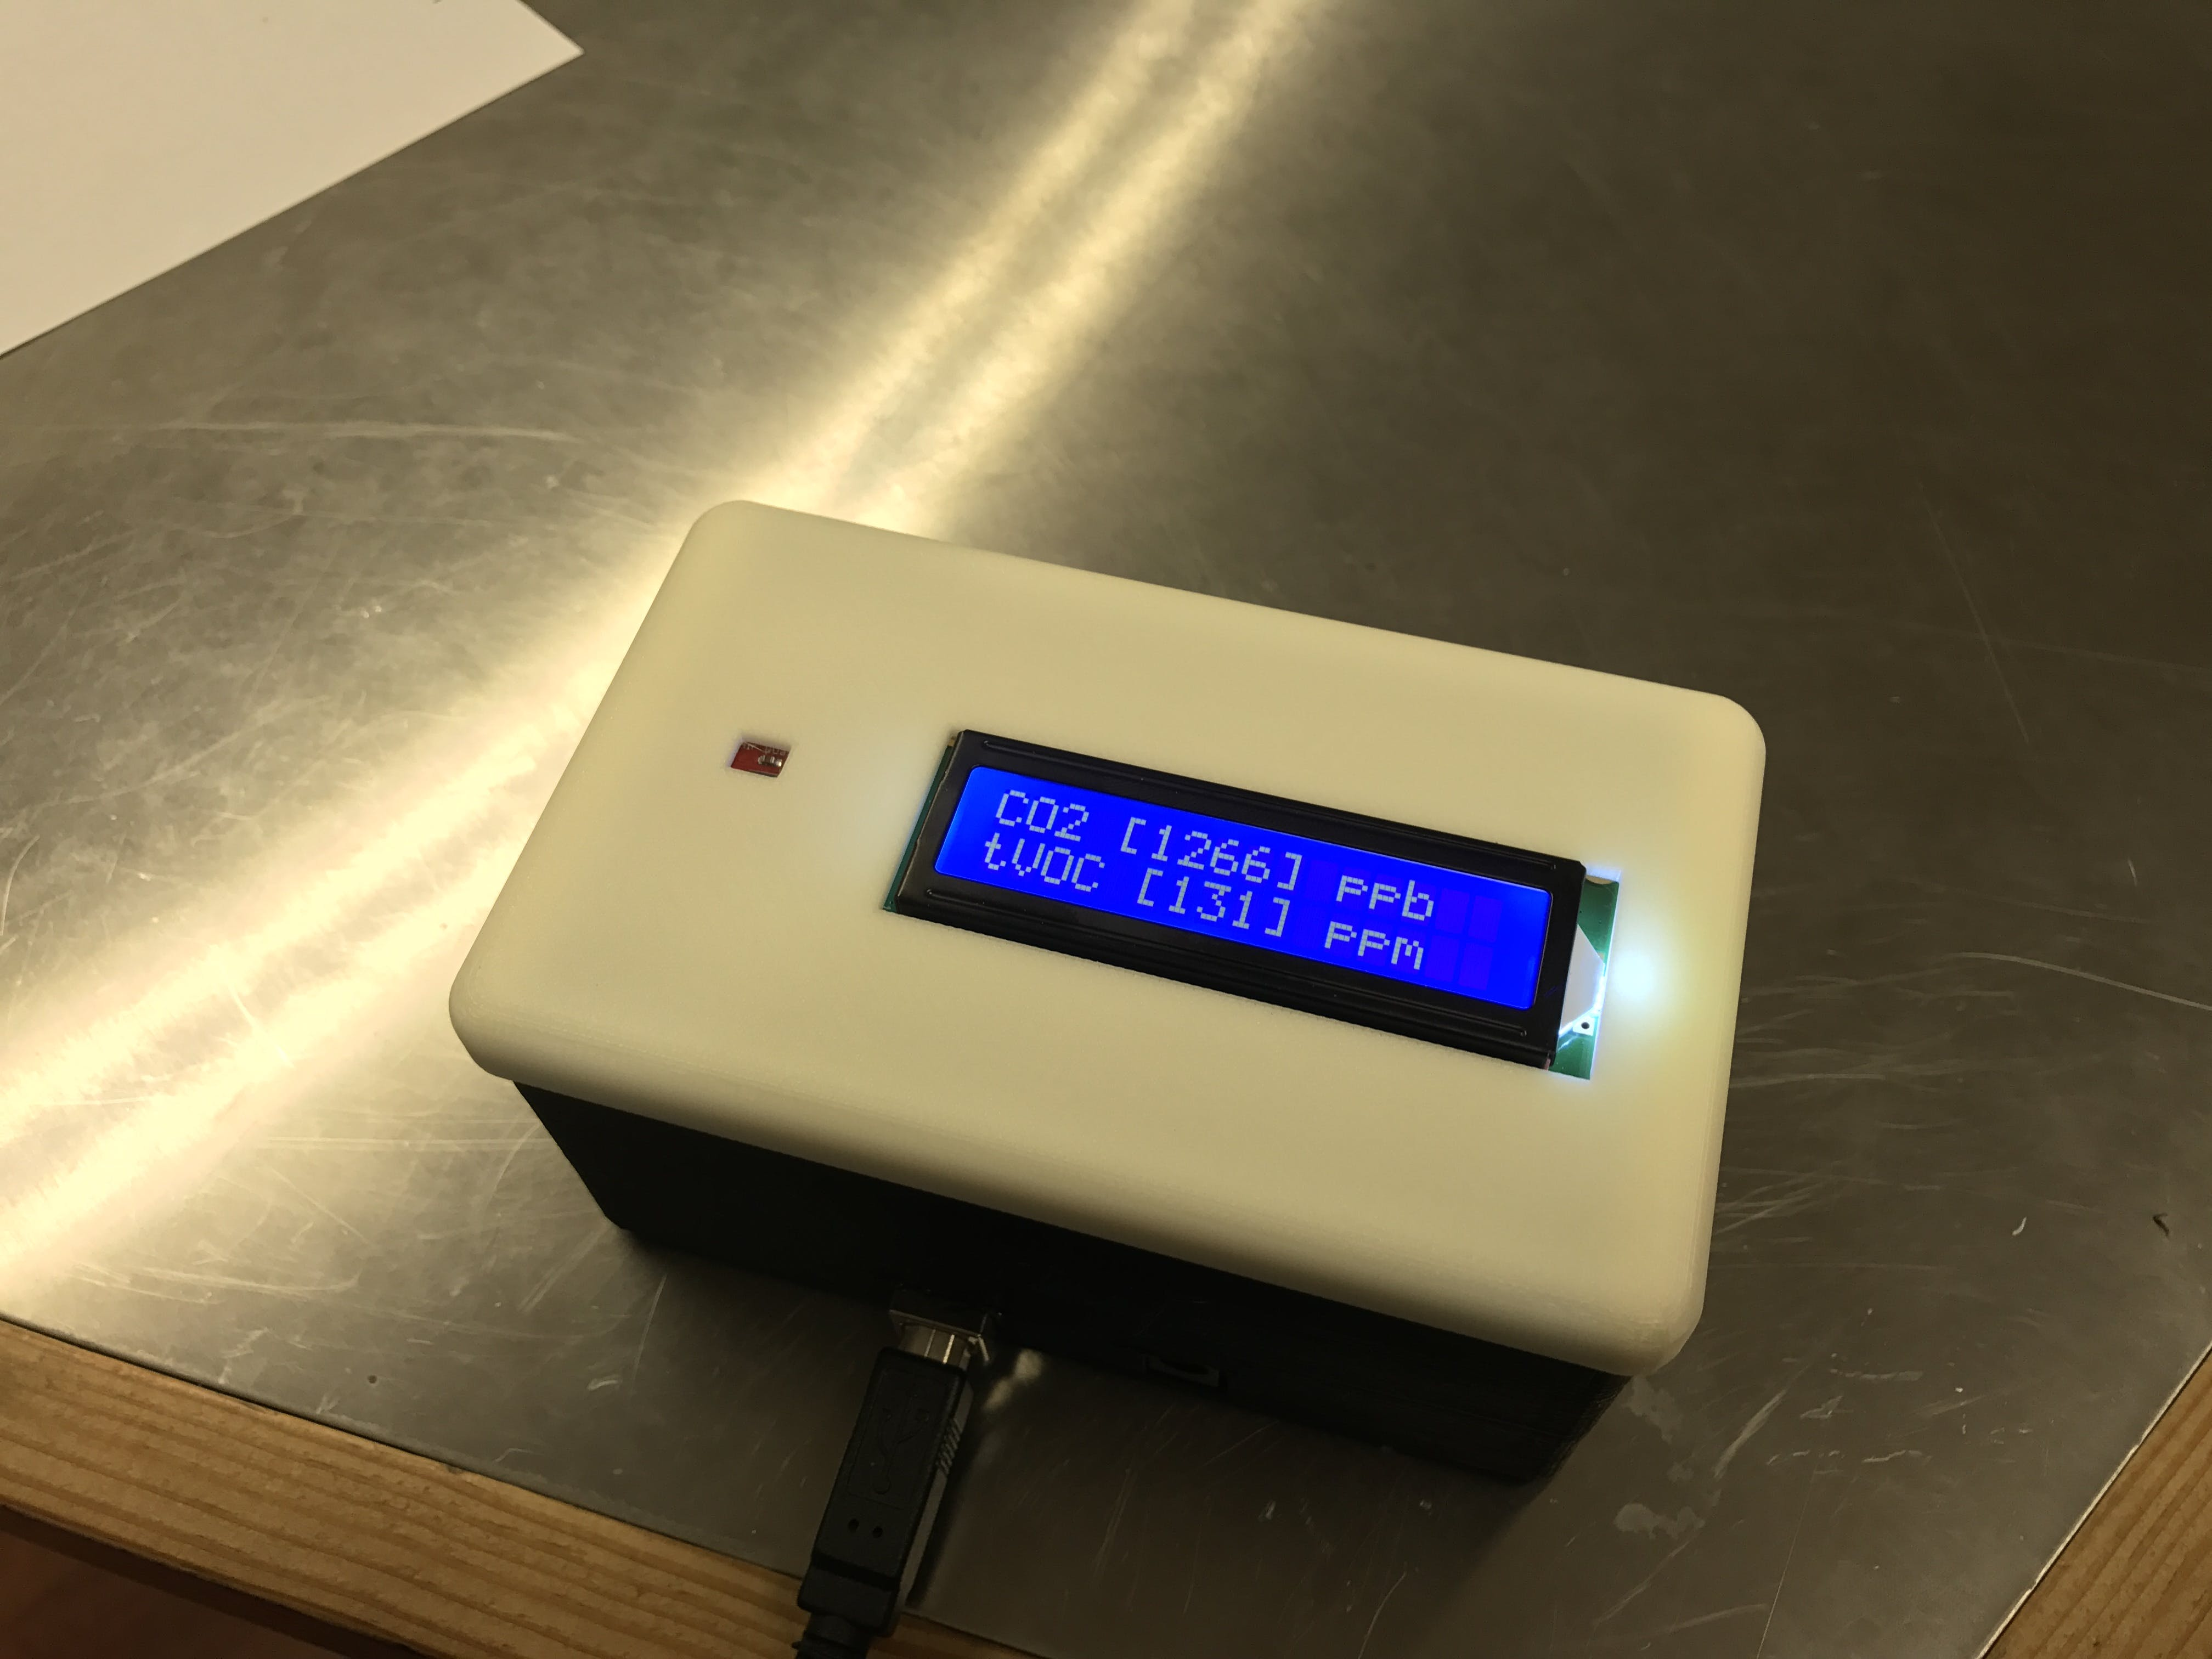 Air Quality Monitor Live Display